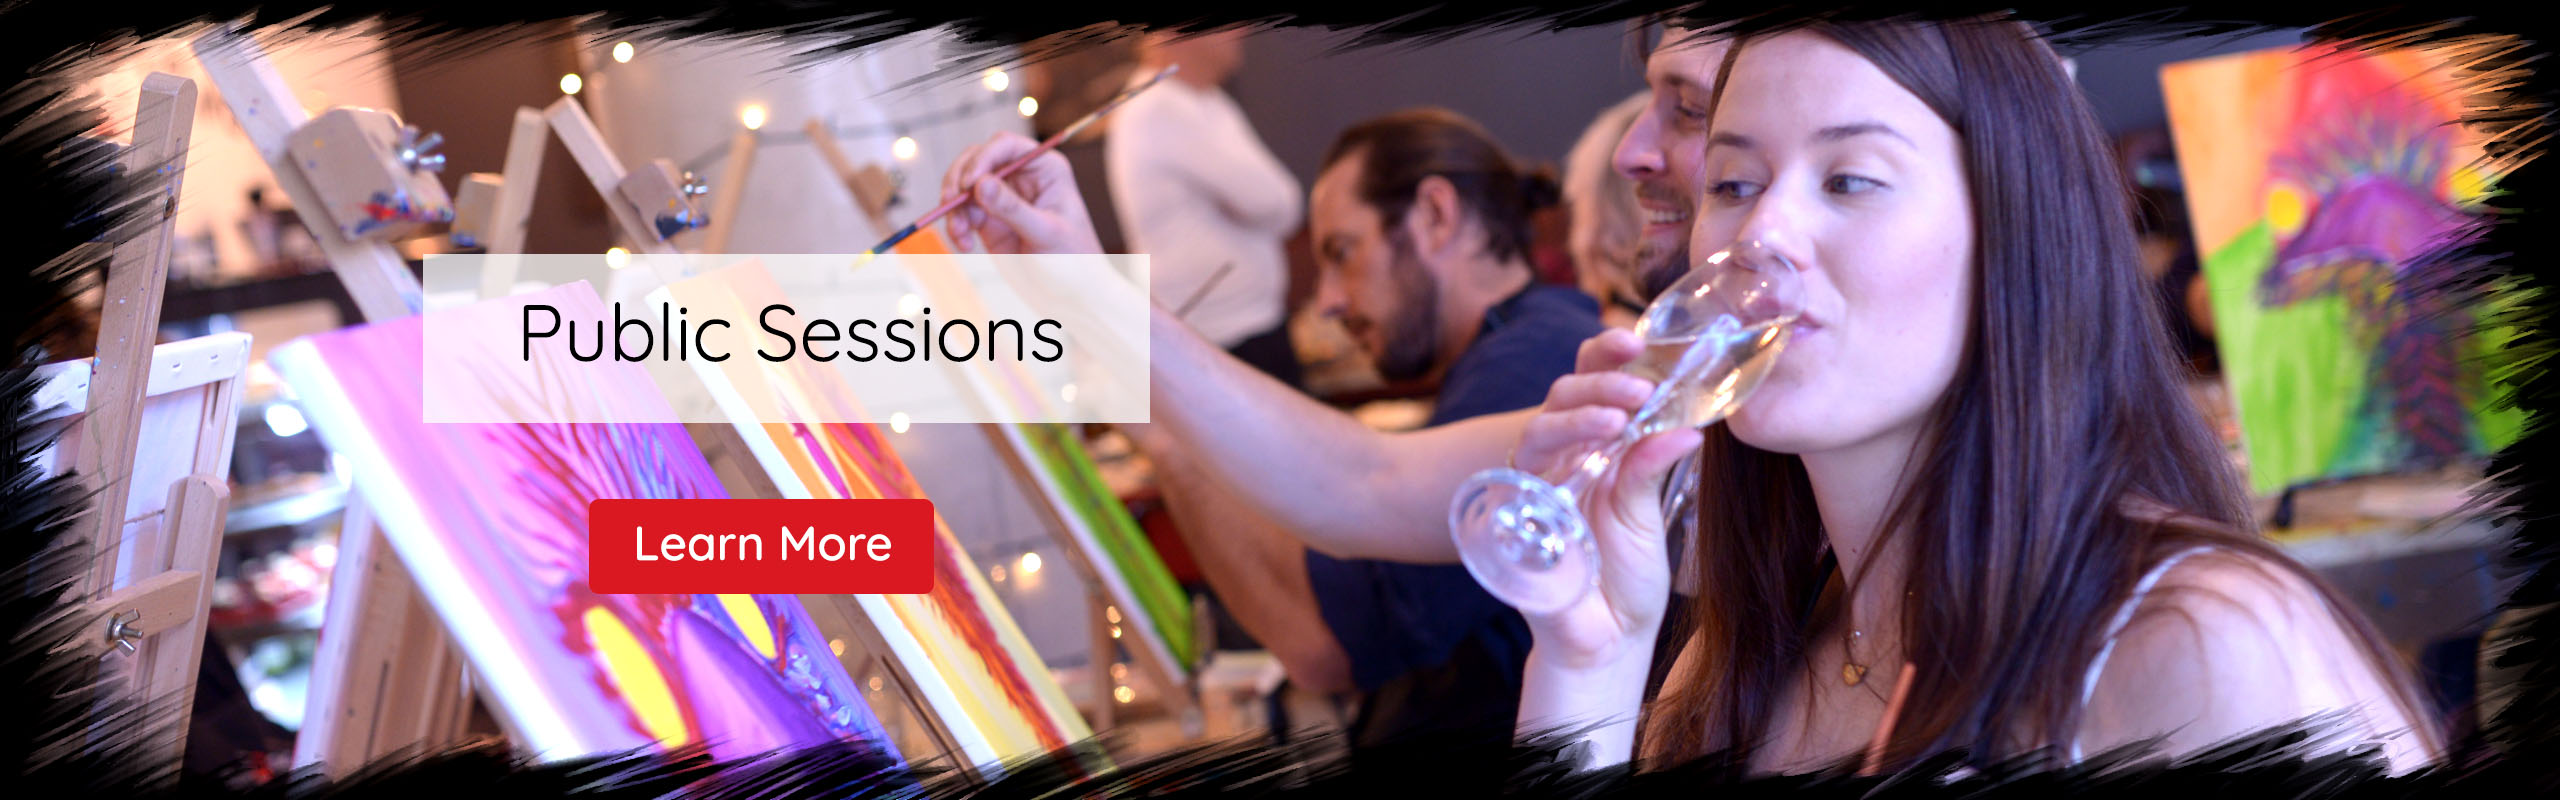 Paint Pinot, Have Fun, Sip Wine and Be Creative. Public Sessions, Learn More.